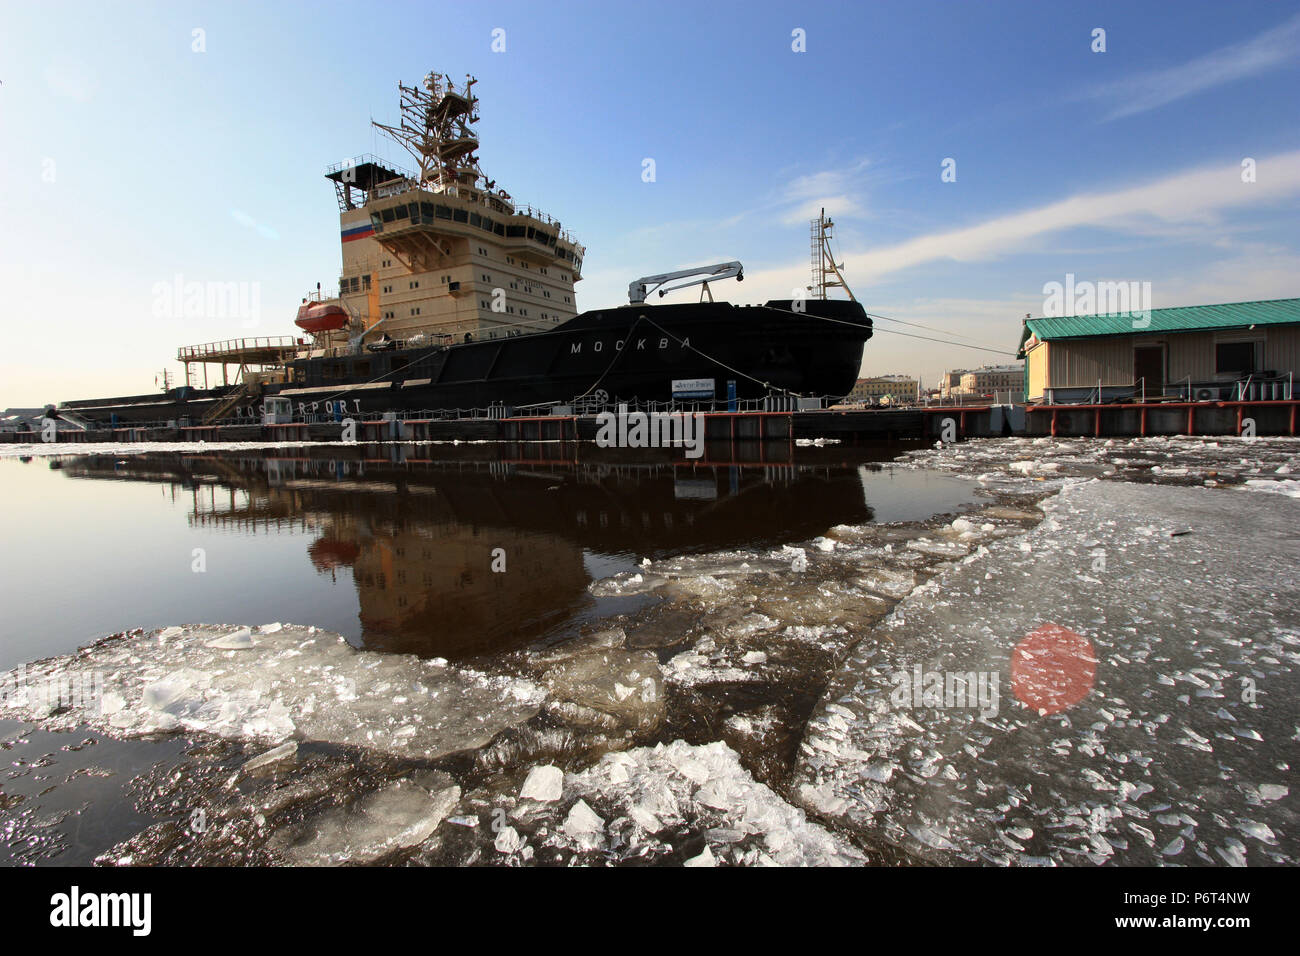 edc3ecbe08 Russian nuclear icebreaker Moscow moored to the pier on the Neva river in  St. Petersburg